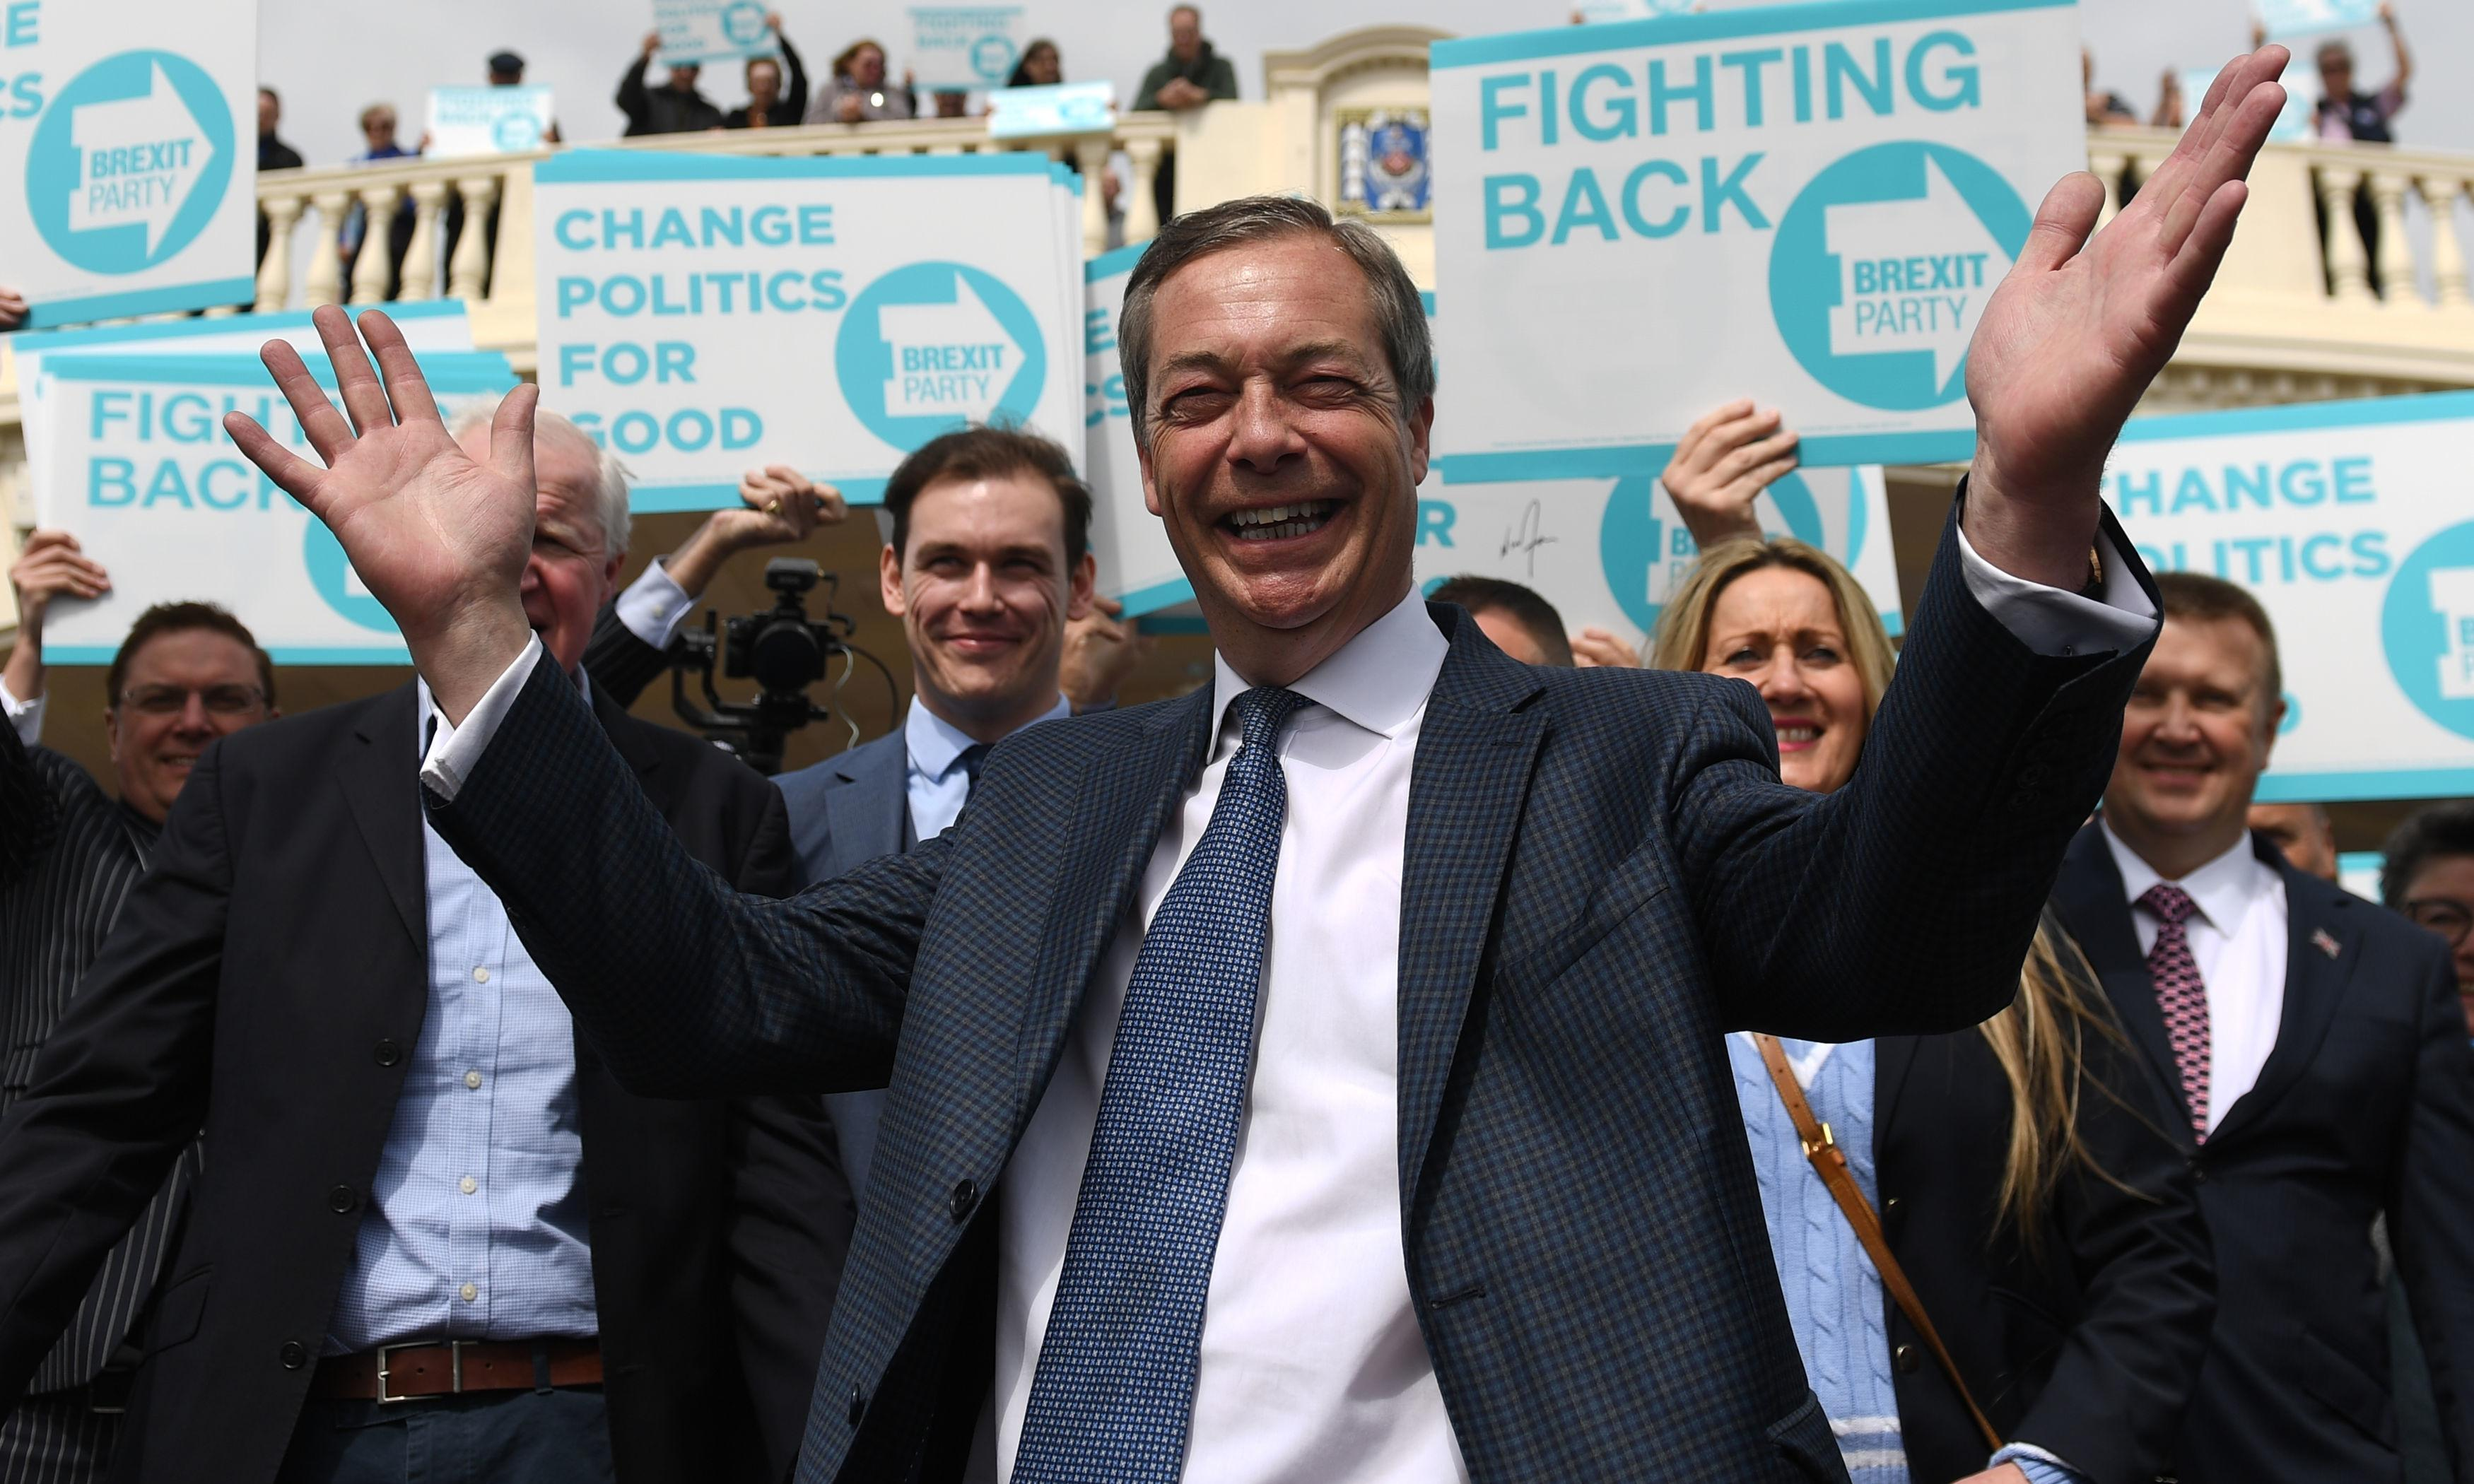 Farage: Brexit party will use EU poll to oust 'remain parliament'